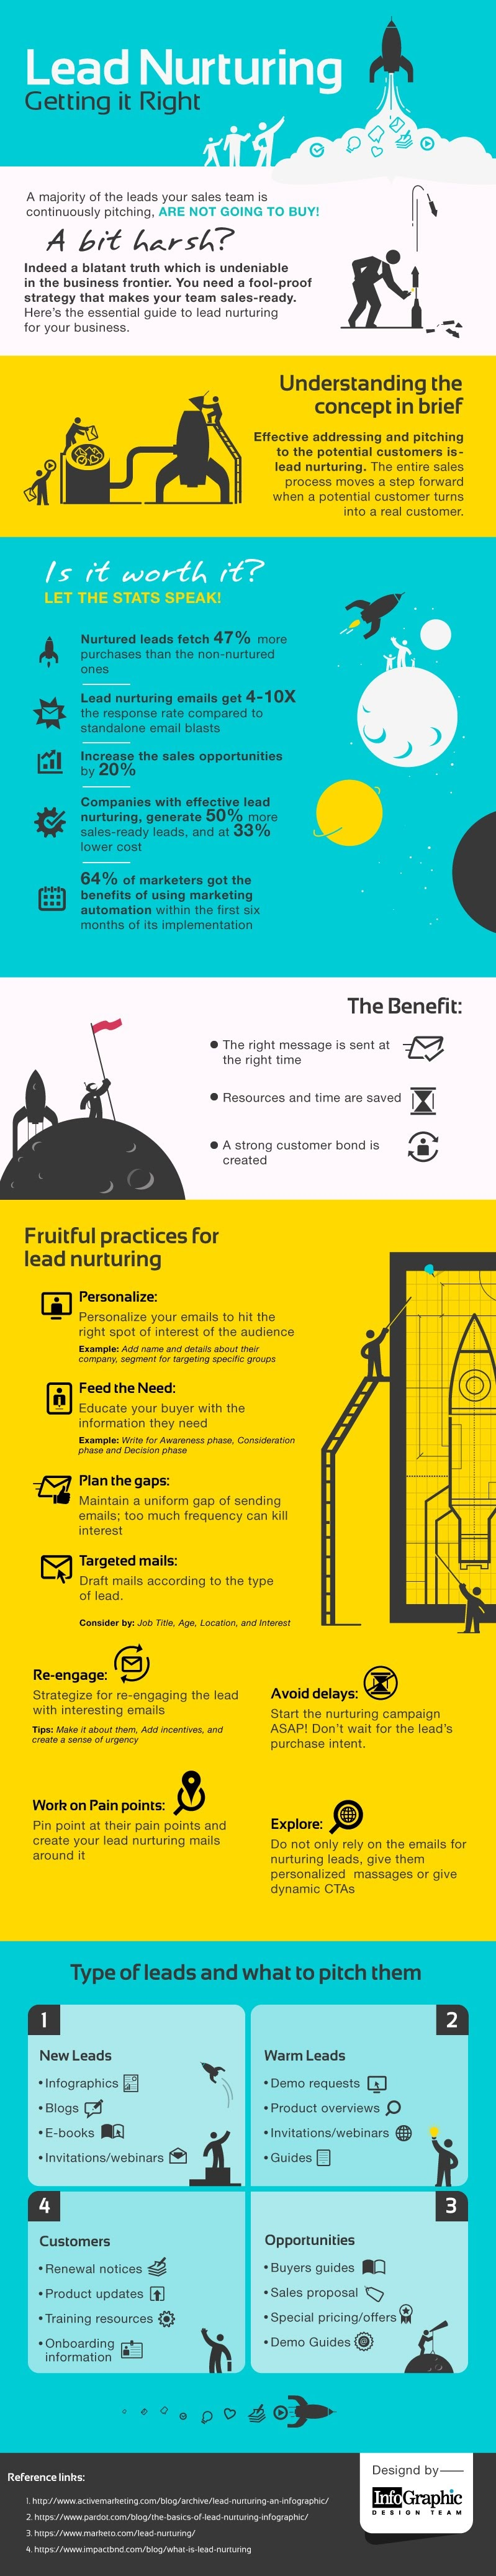 Lead Nurturing Getting It Right #Infographic